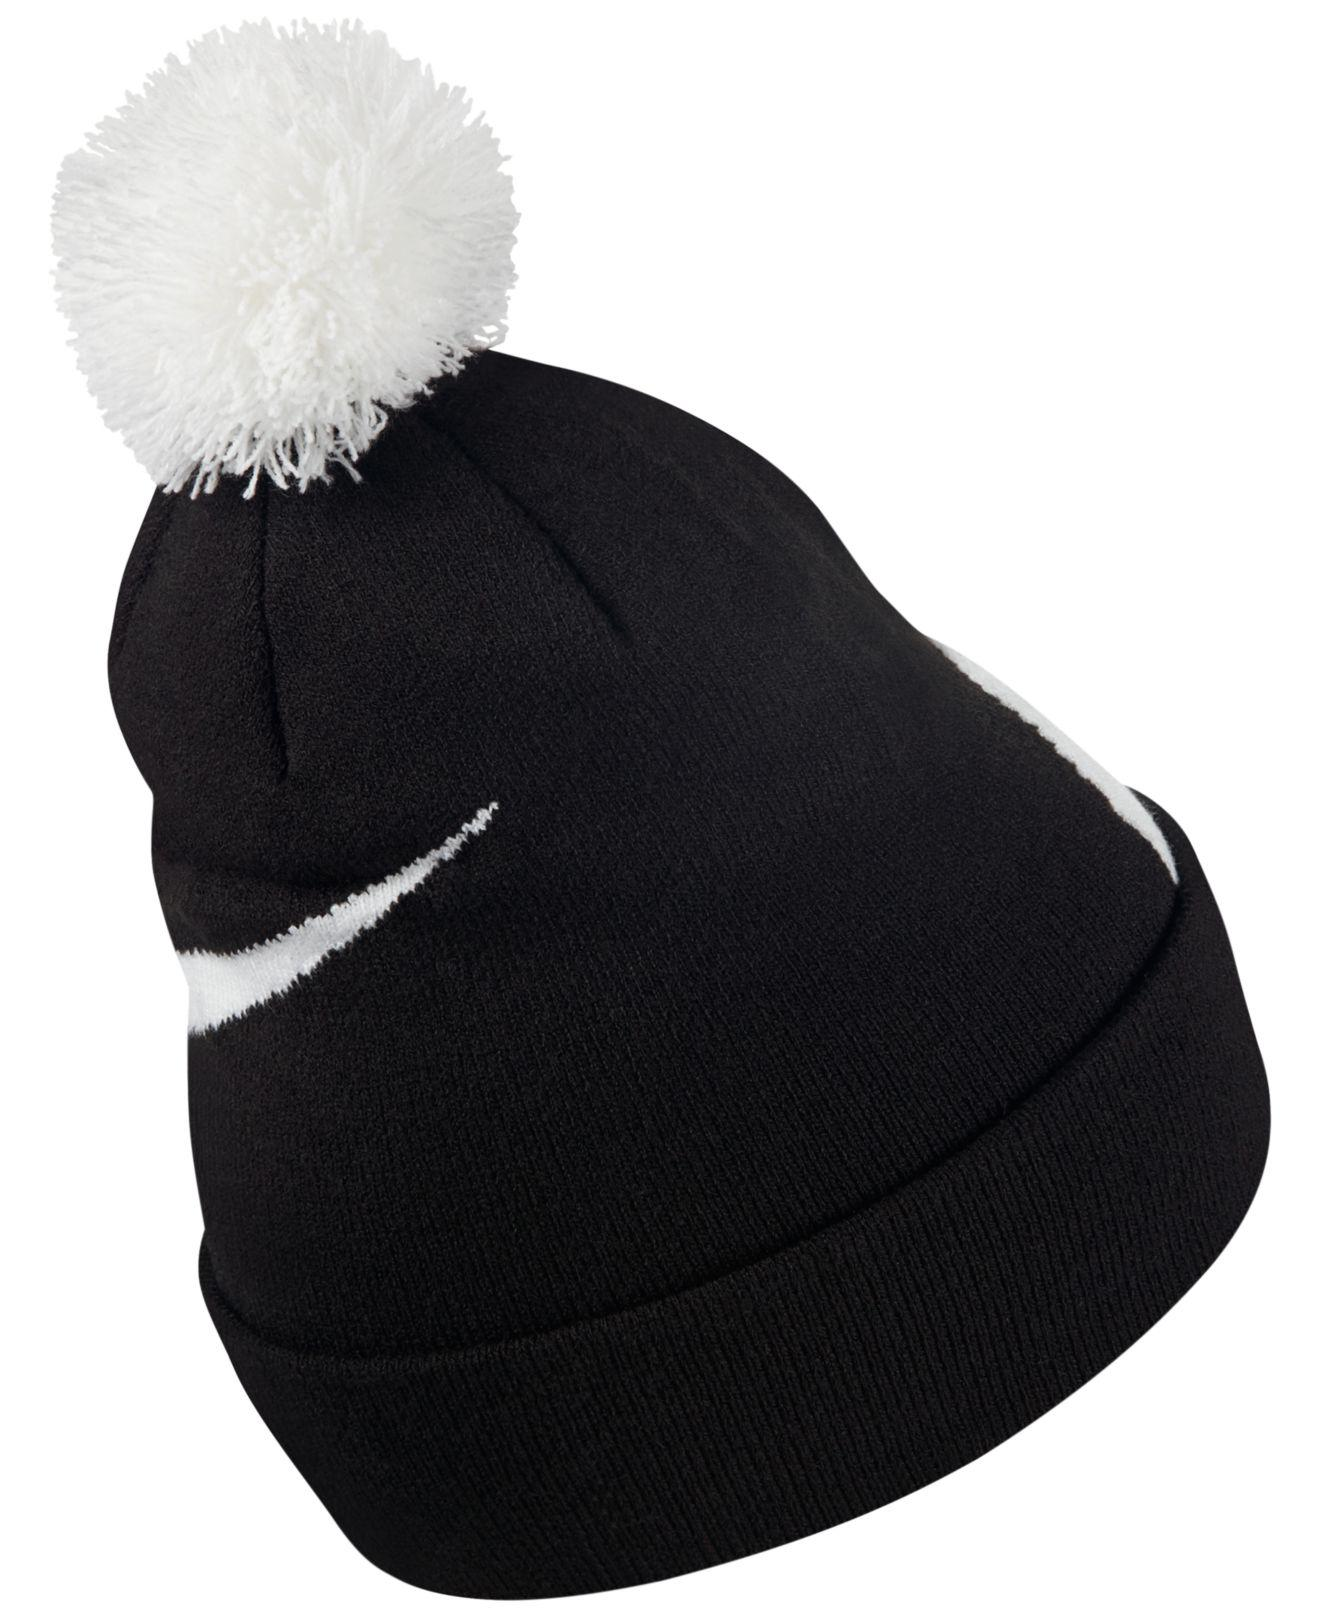 check out 71c48 d6327 Lyst - Nike Men s Exploded Swoosh Pom Pom Beanie in Black for Men